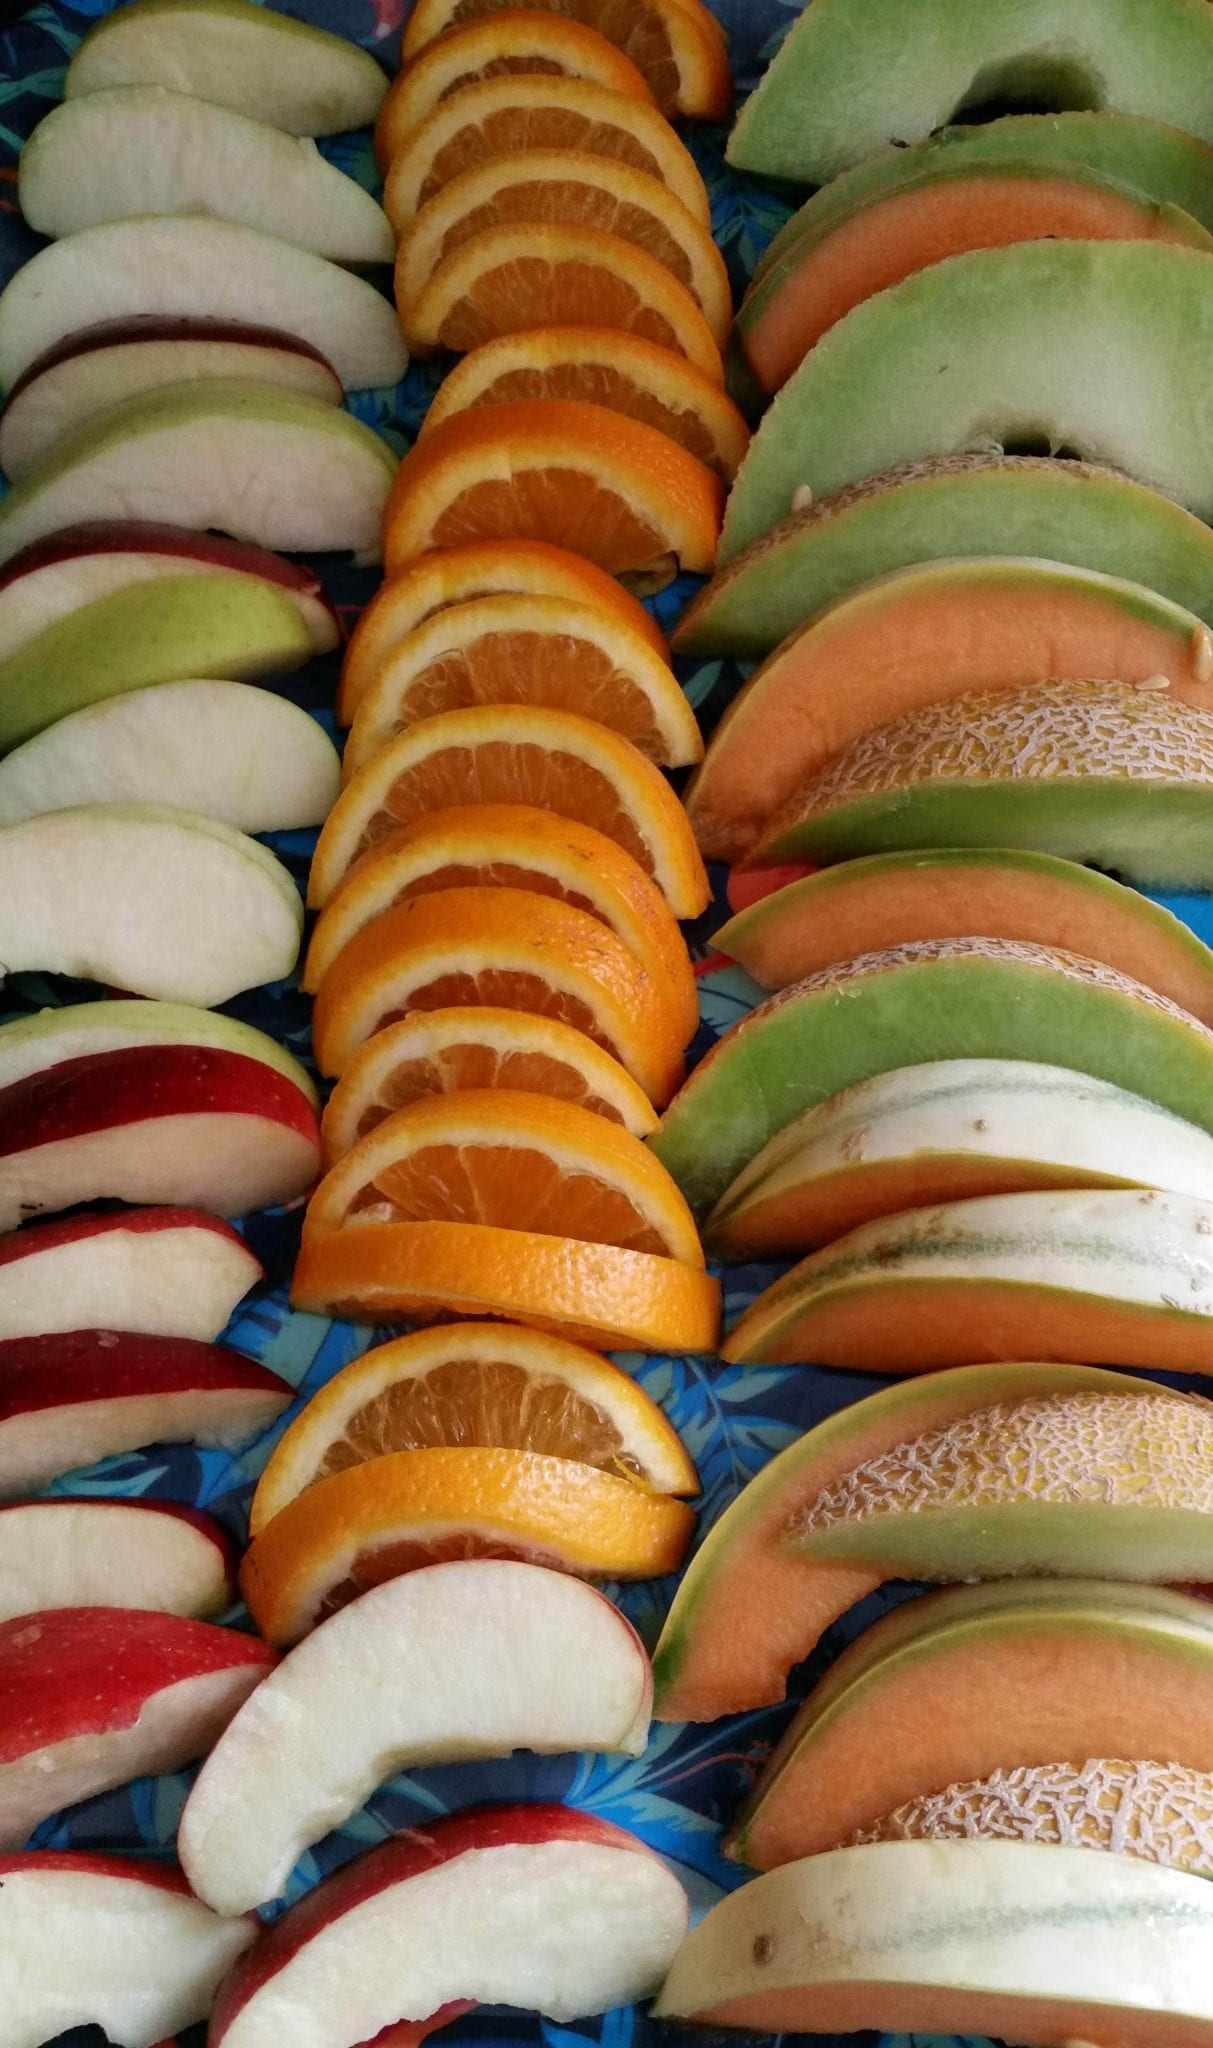 rows of apple, orange and melon slices